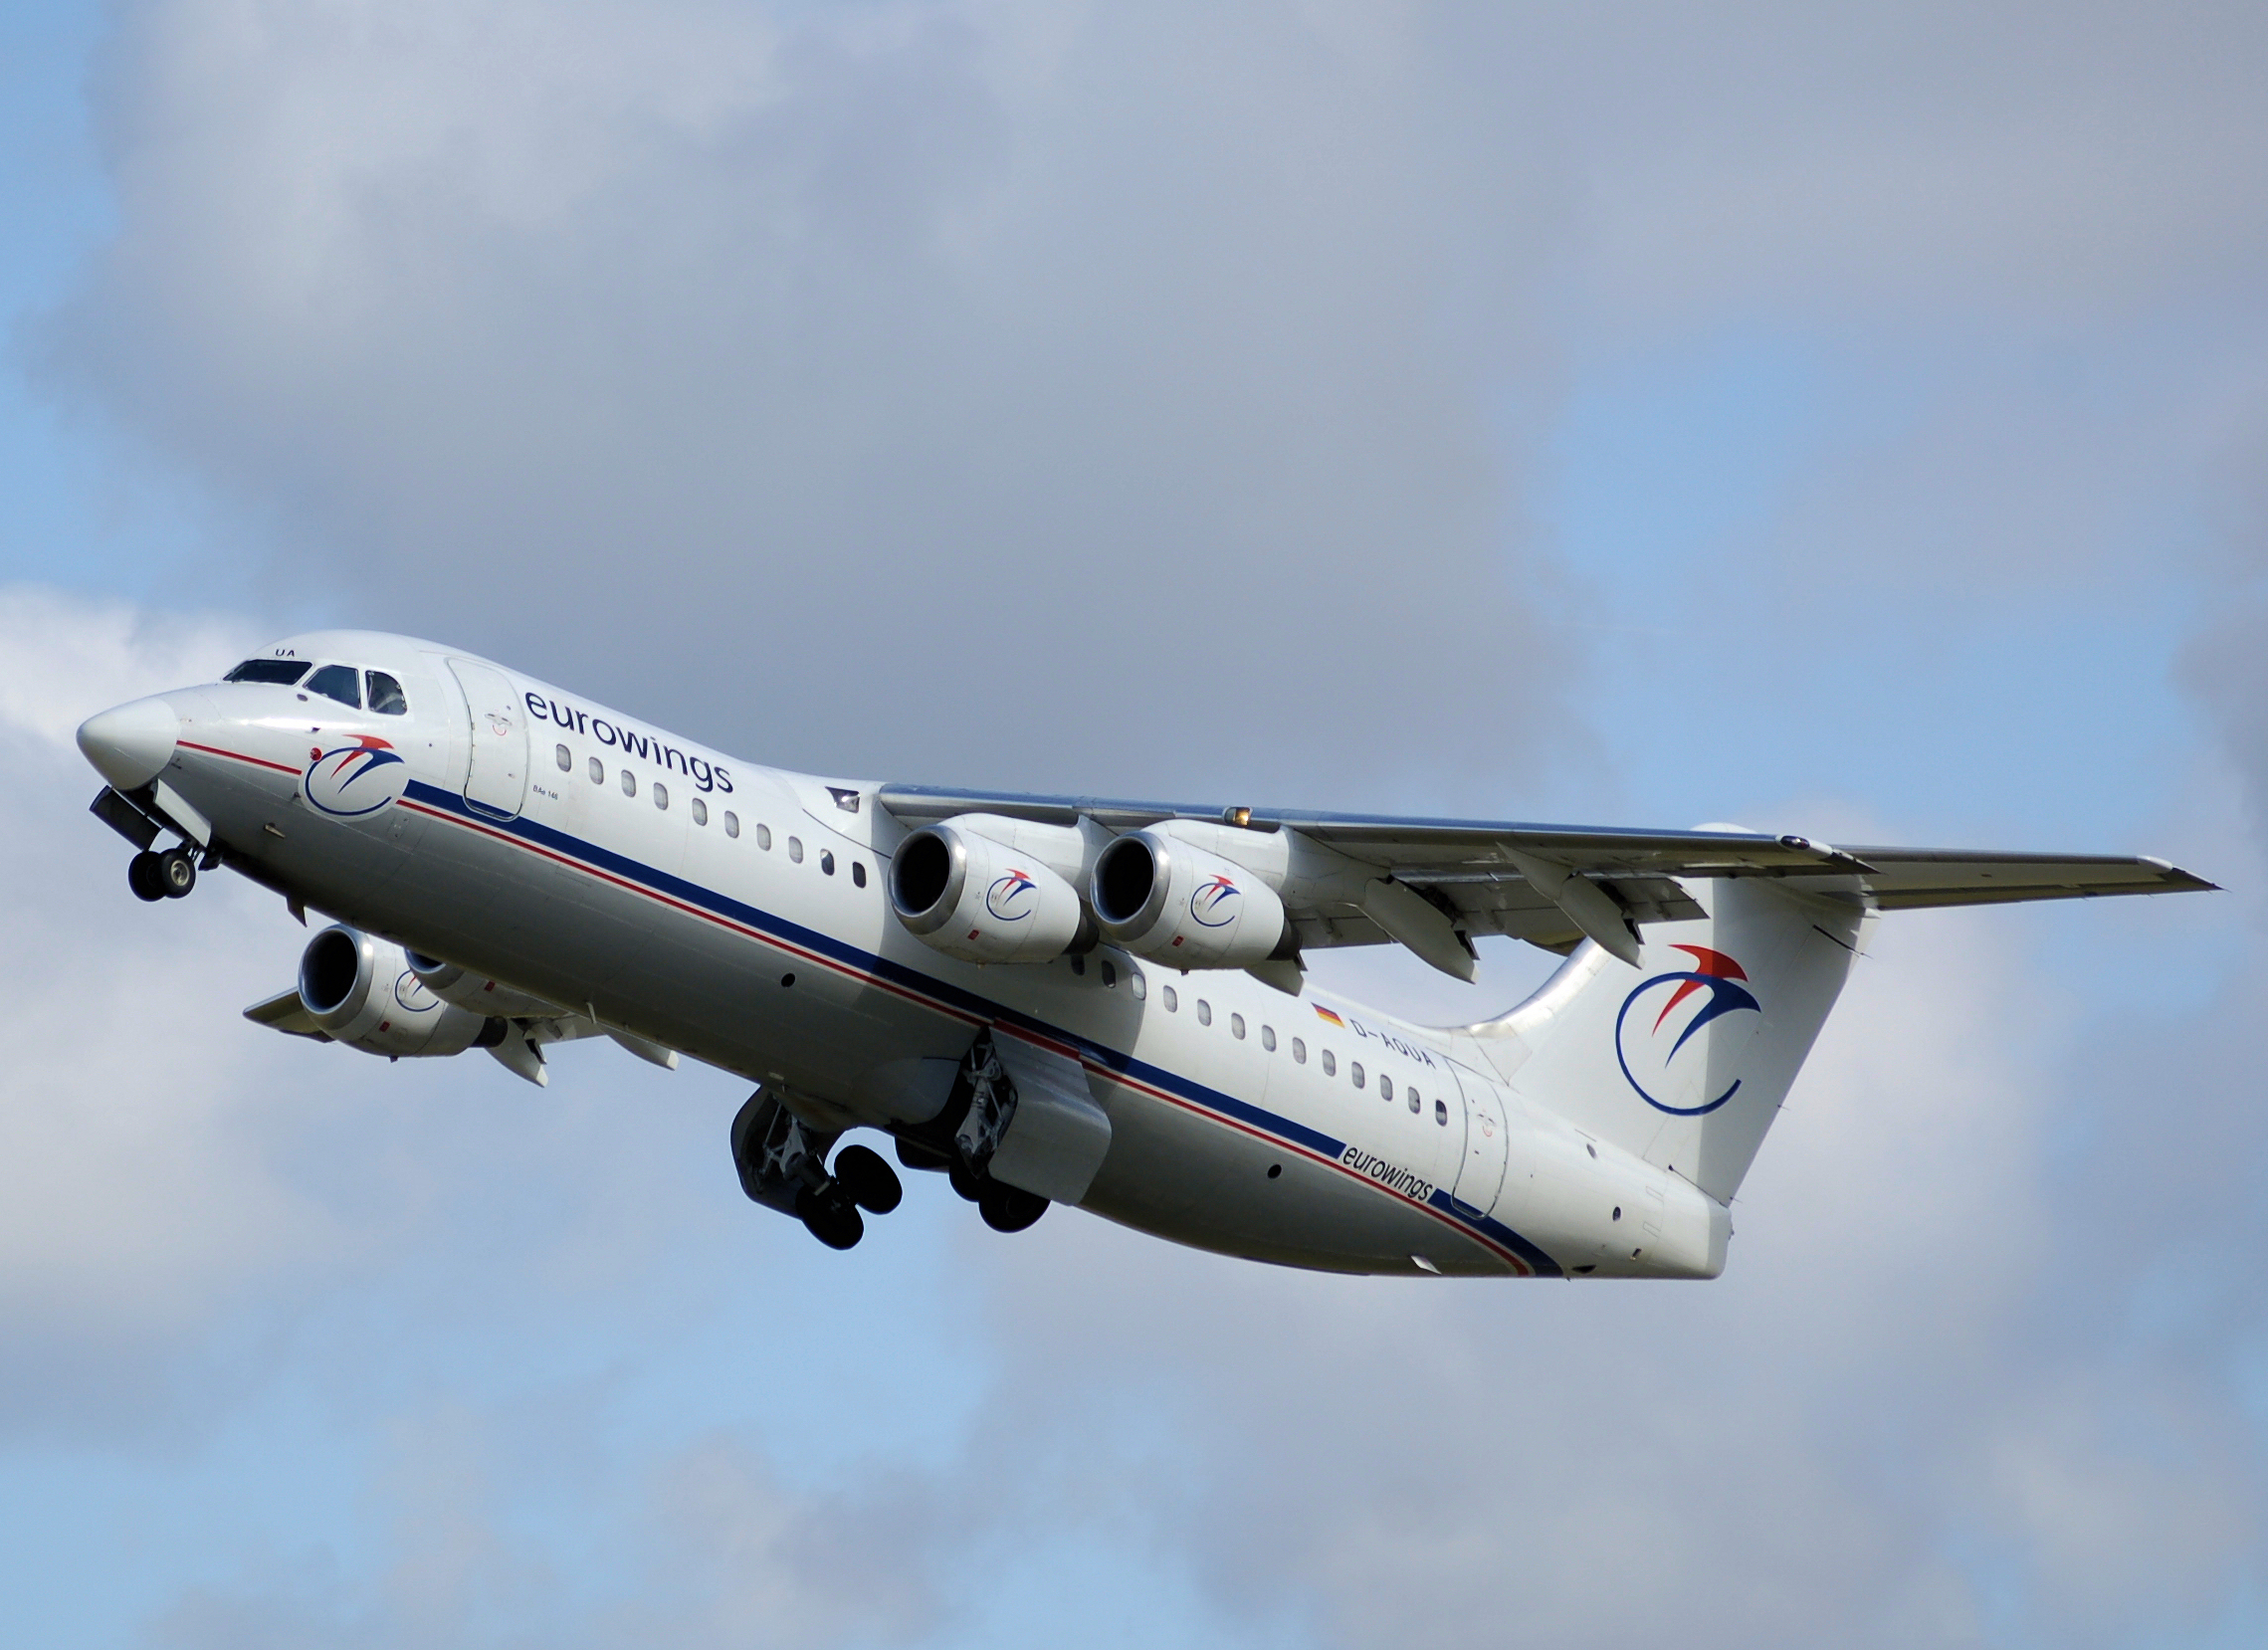 British Aerospace BAe-146 #3